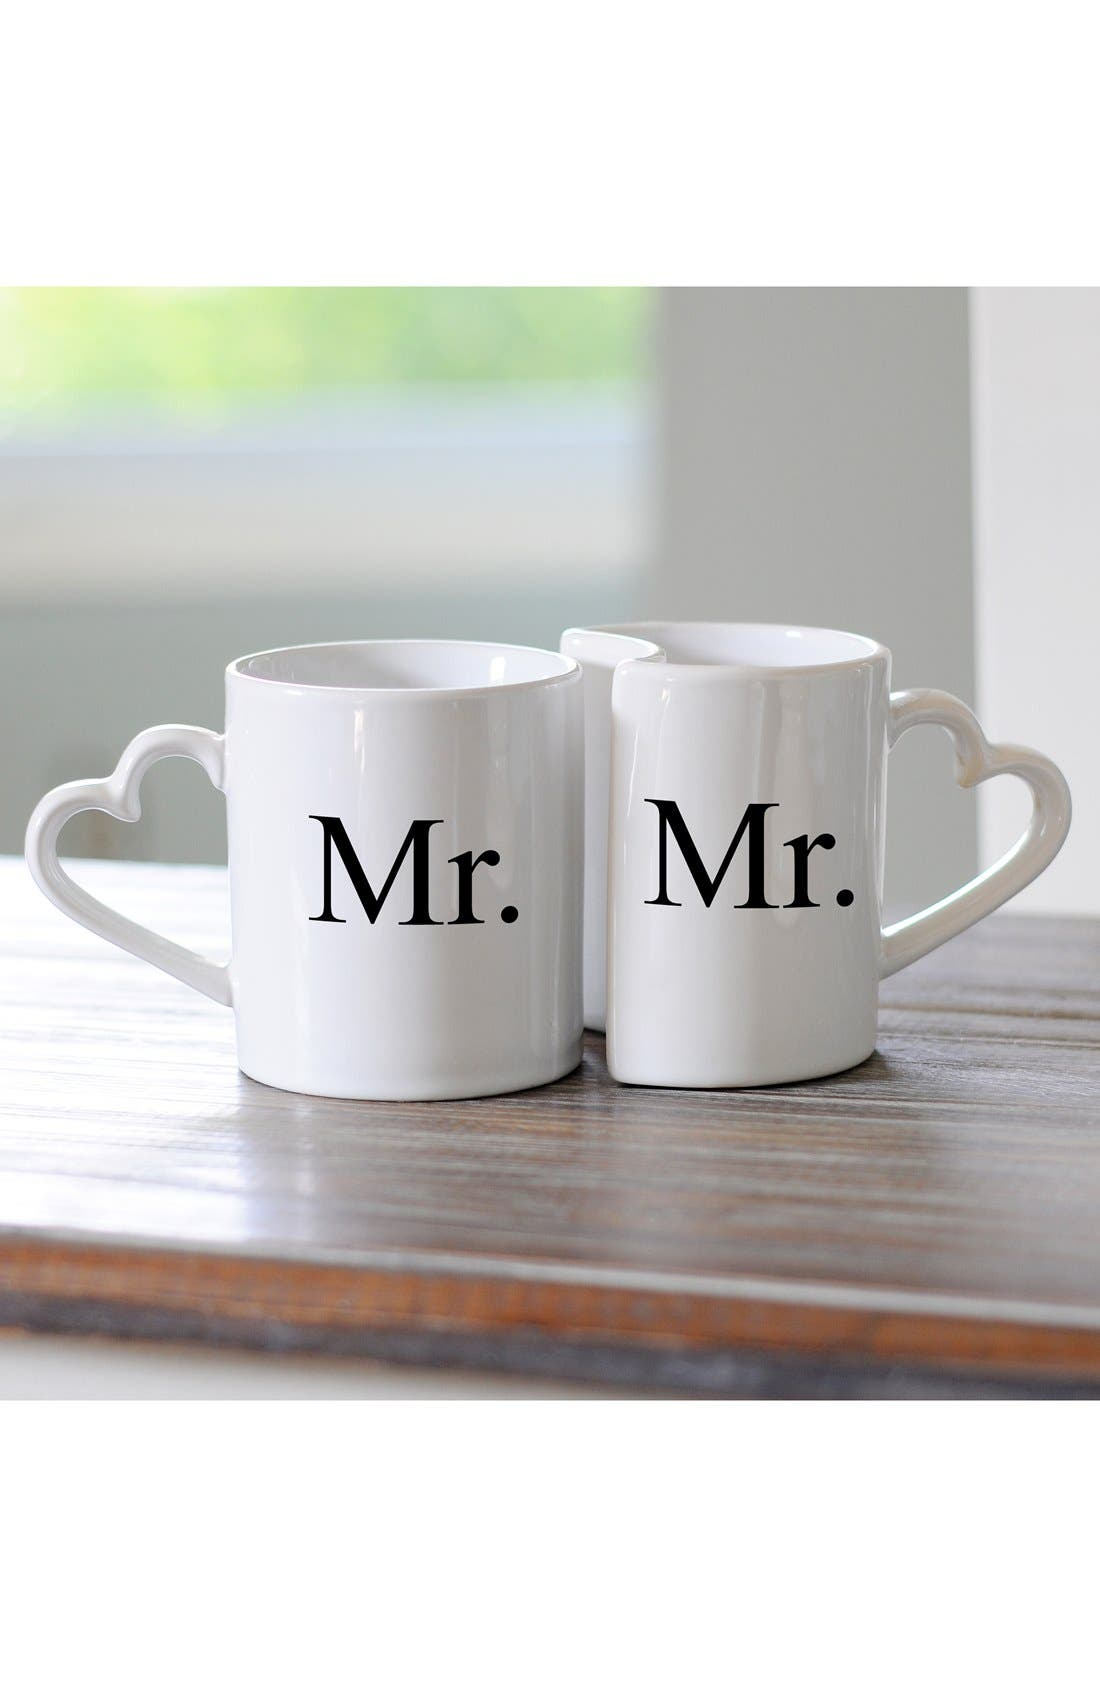 Main Image - Cathy's Concepts 'For the Couple' Ceramic Coffee Mugs (Set of 2)